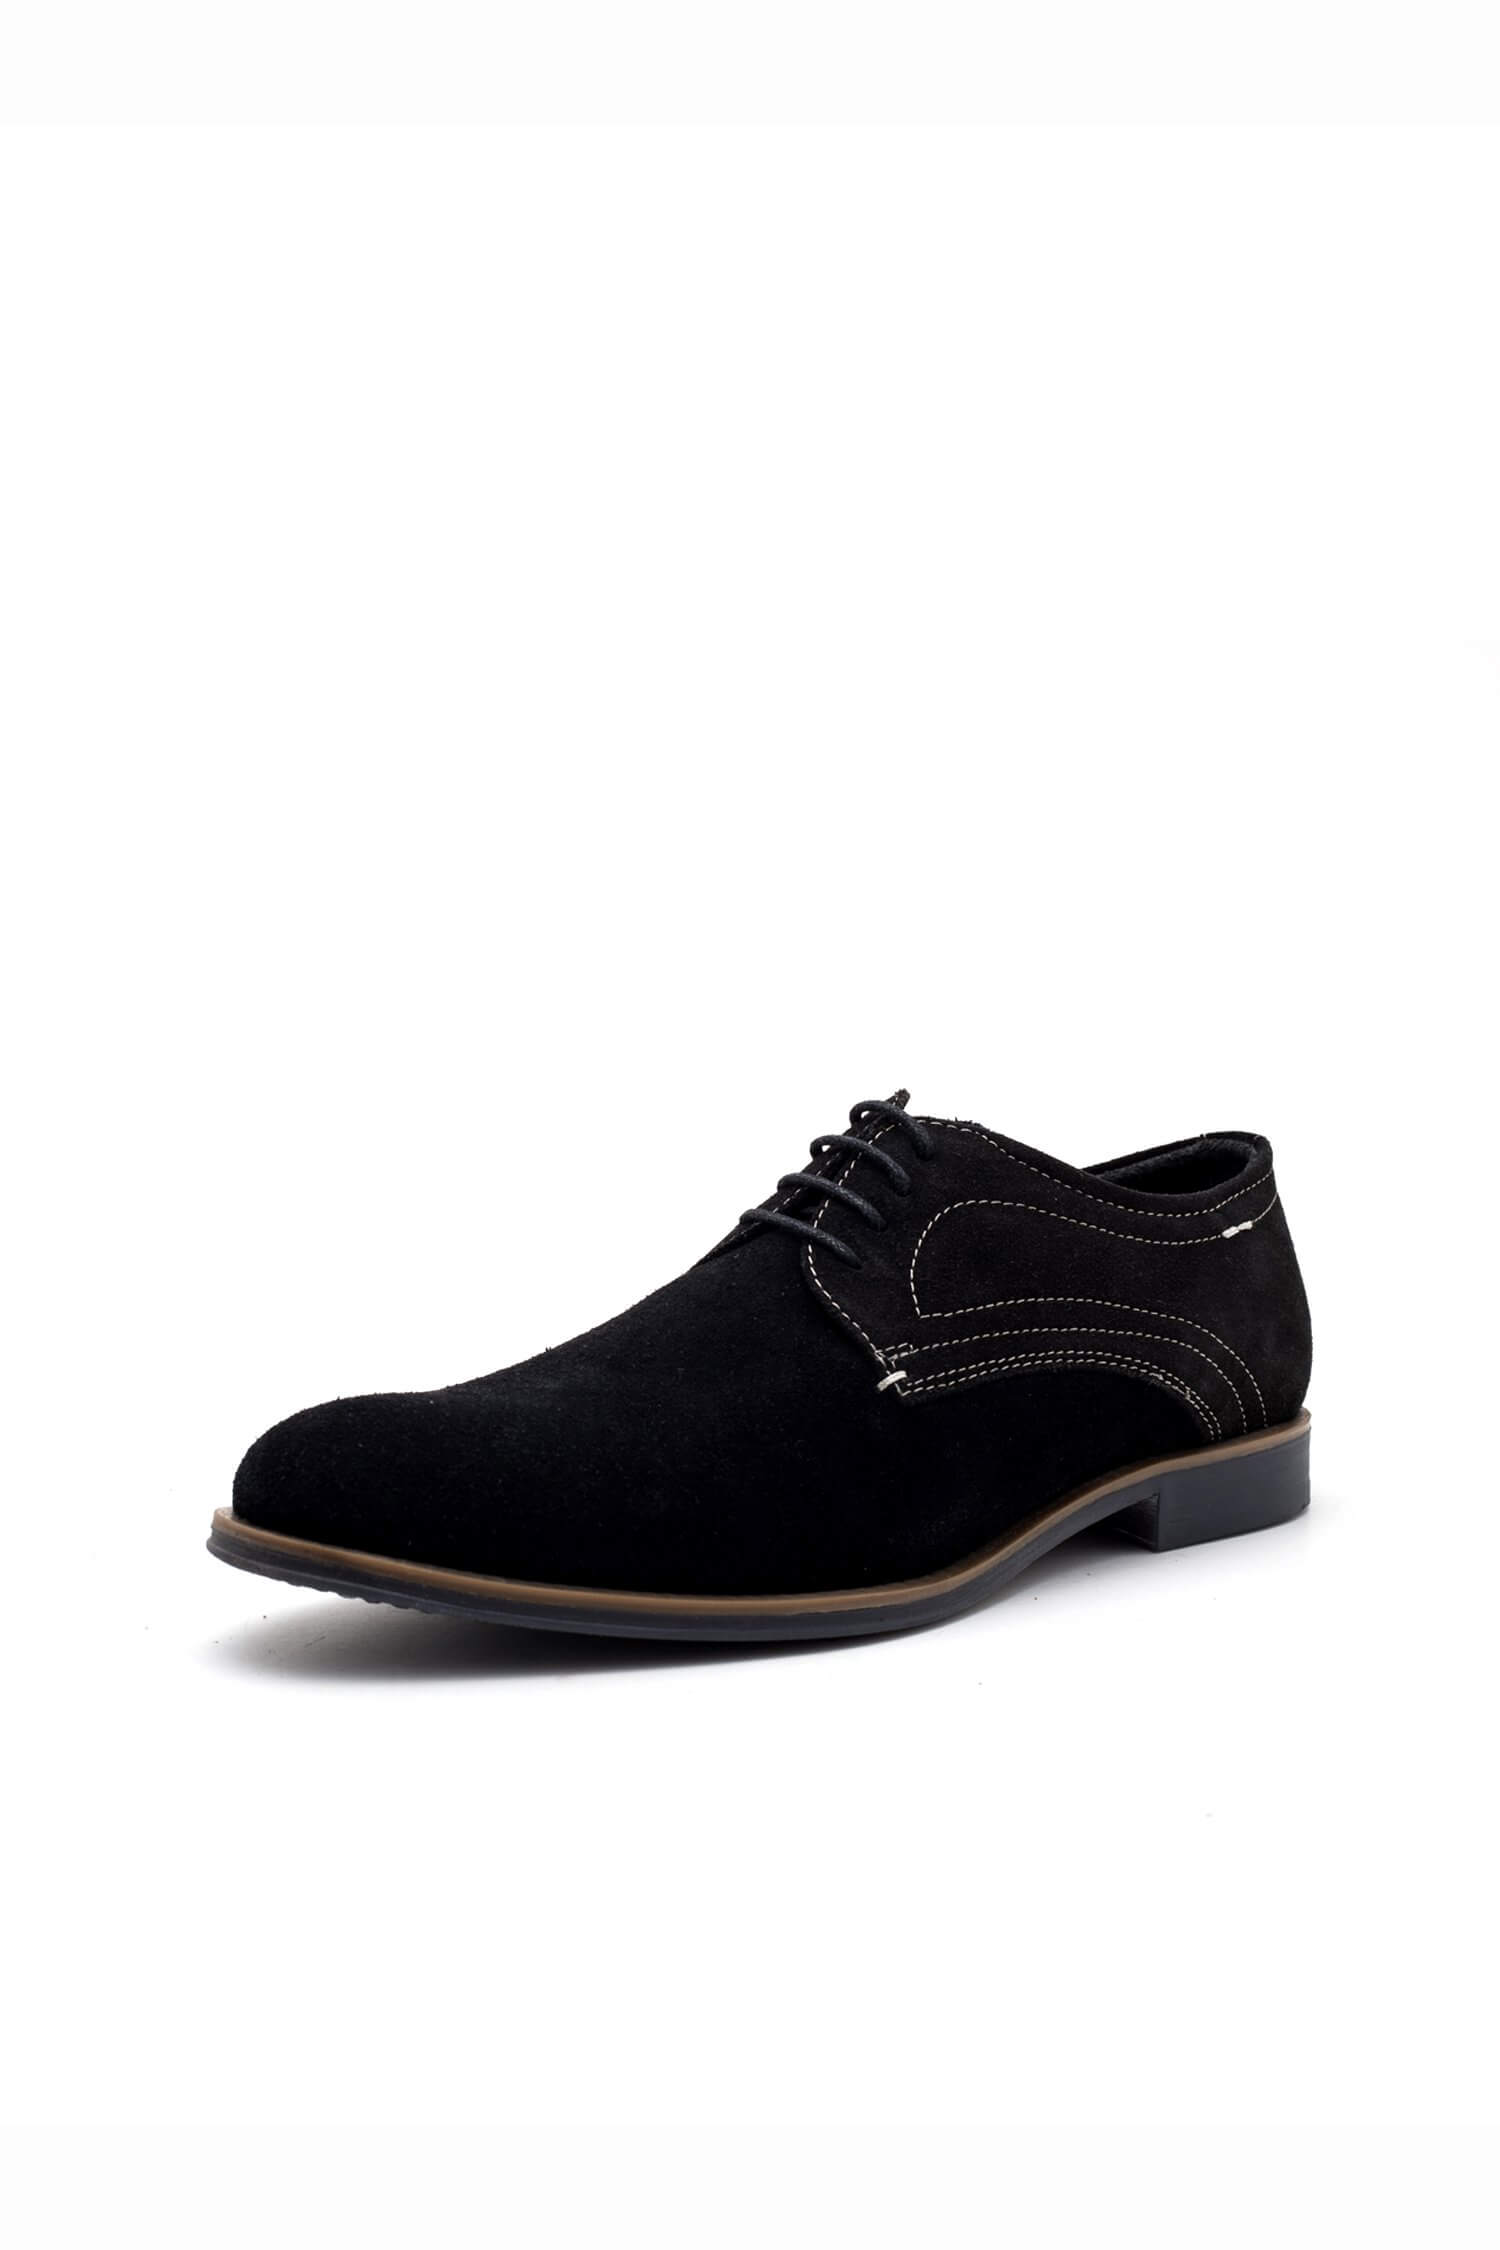 theo ash black suede derby shoes